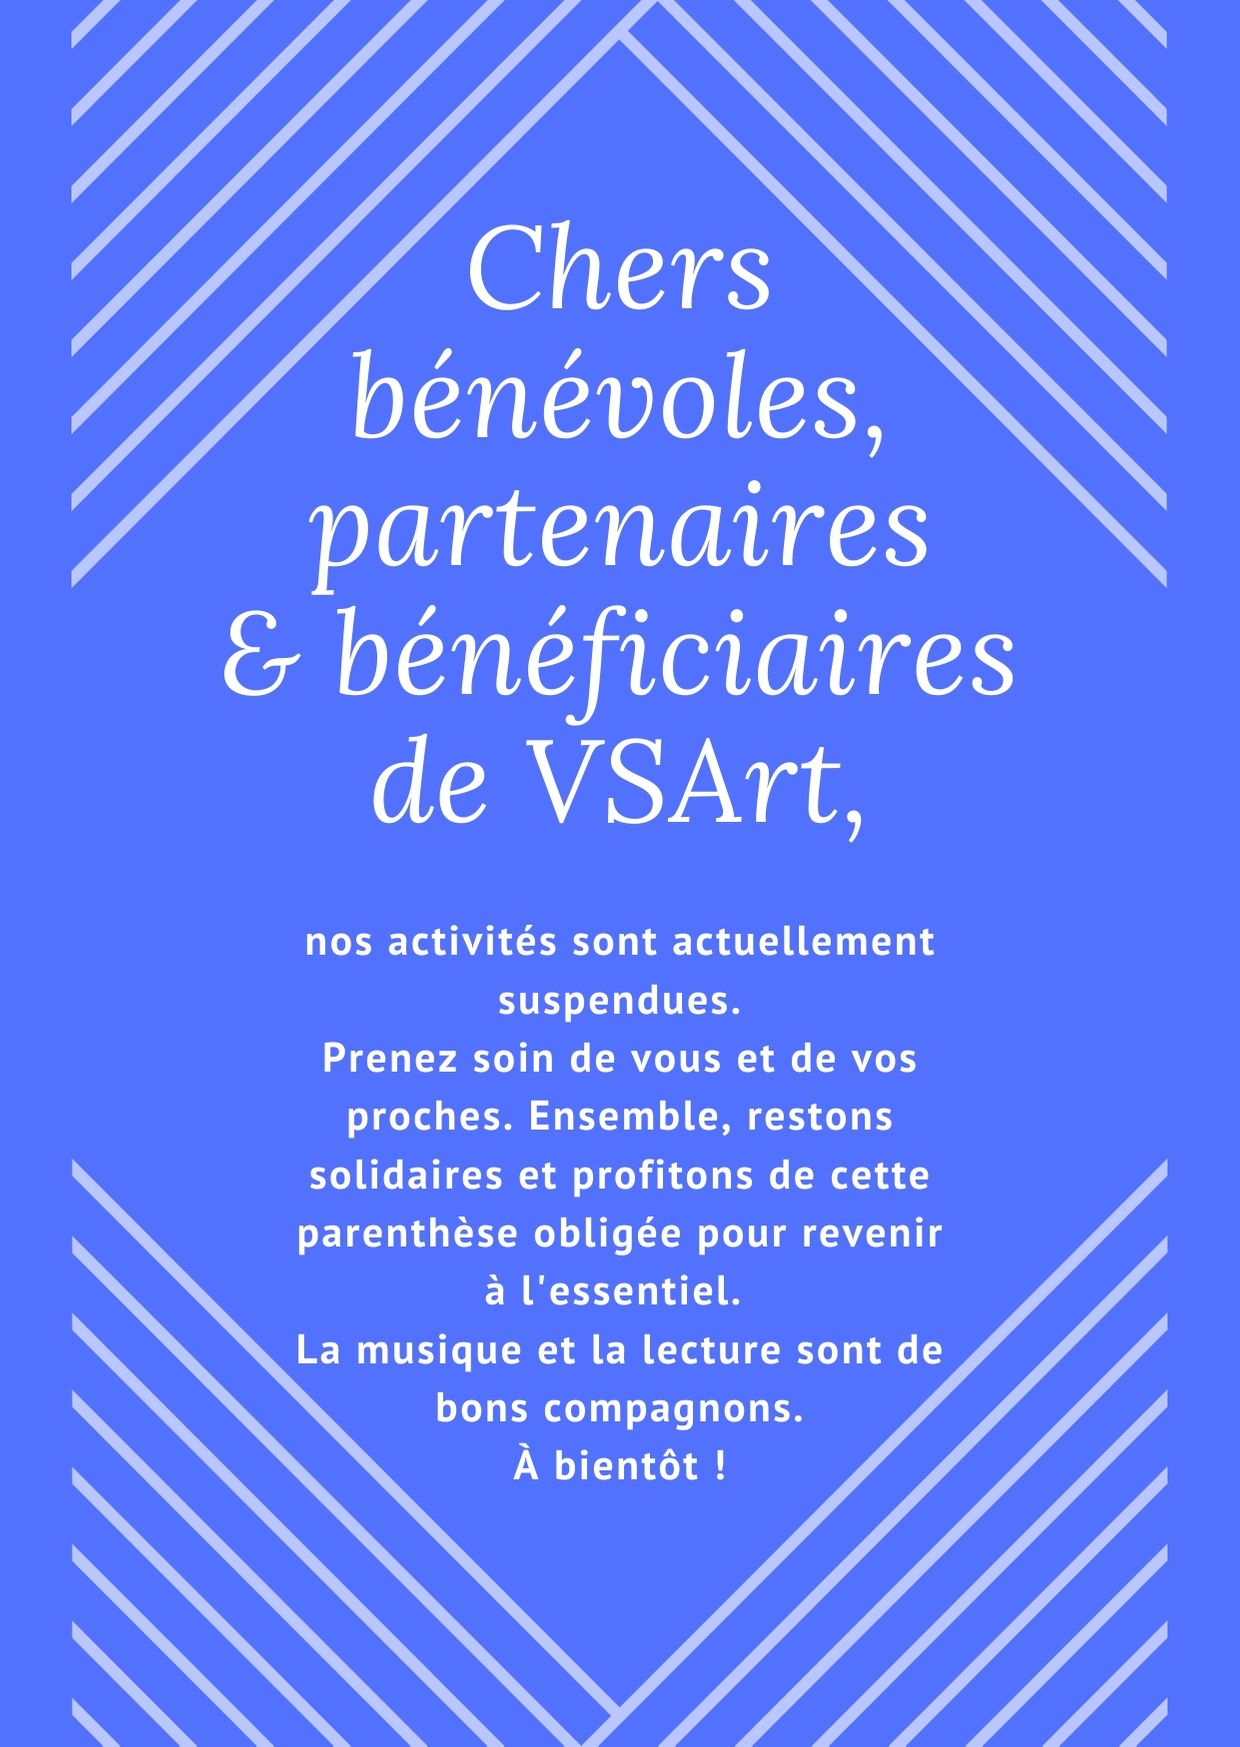 Annonce fermeture VSArt